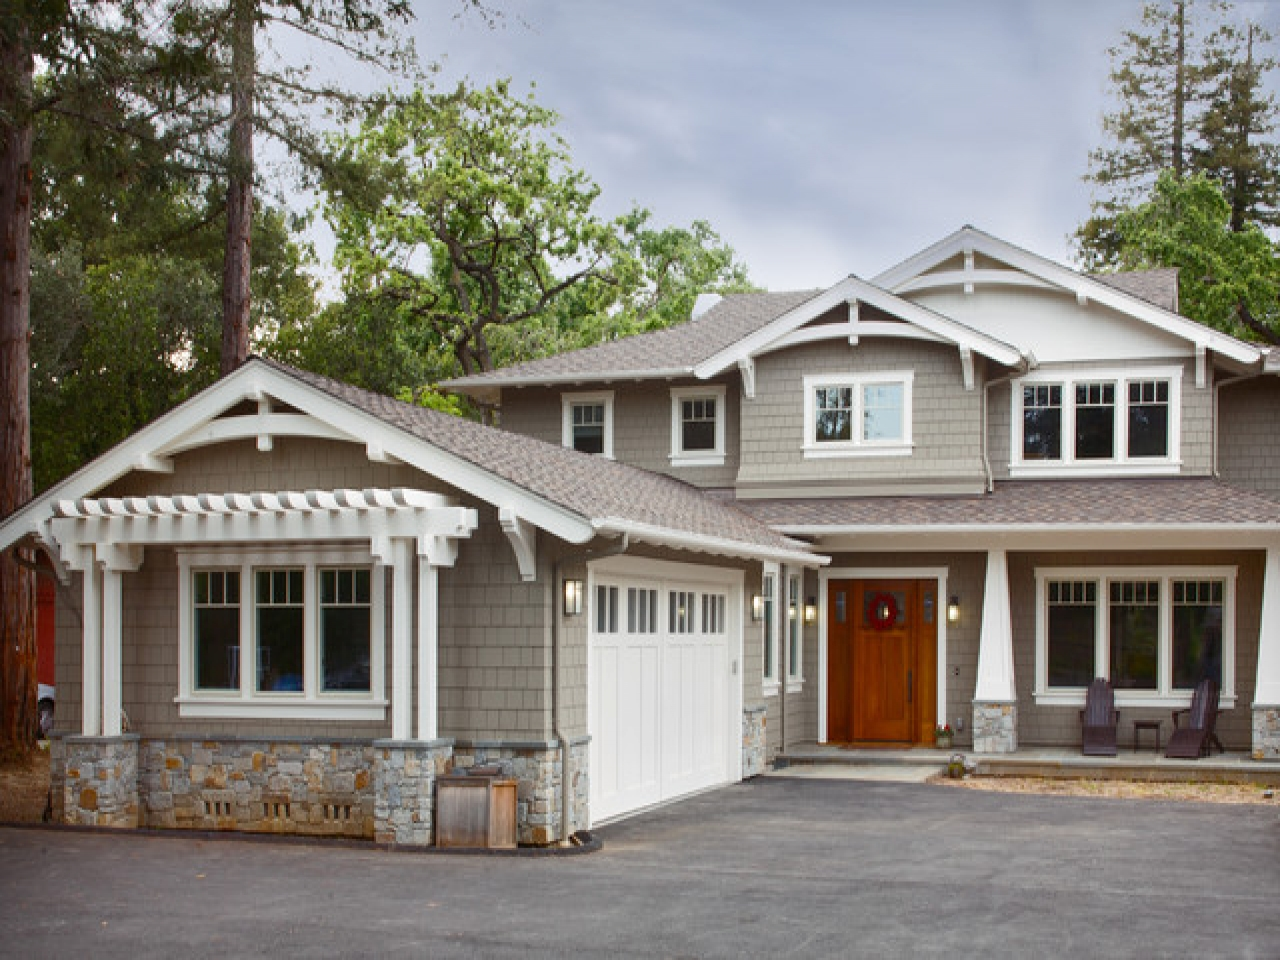 New craftsman bungalow style homes new craftsman style for New construction craftsman homes